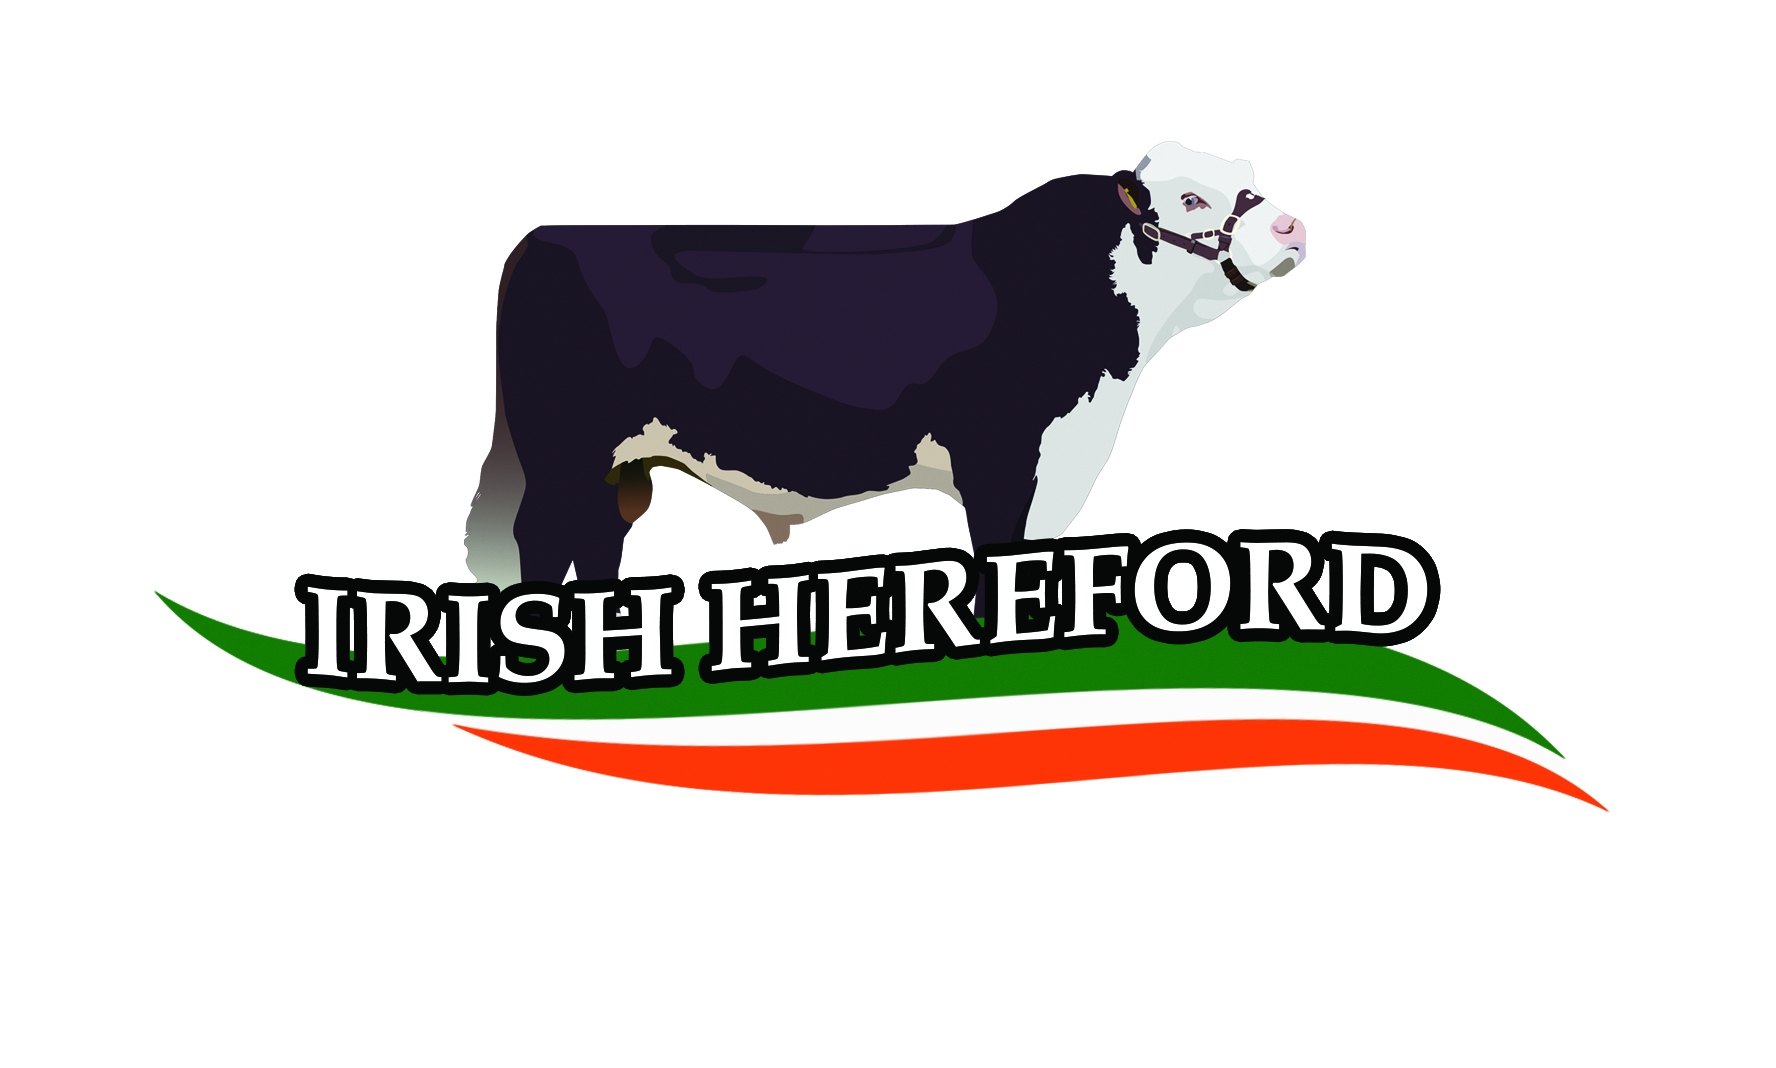 Irish Hereford Breed Society